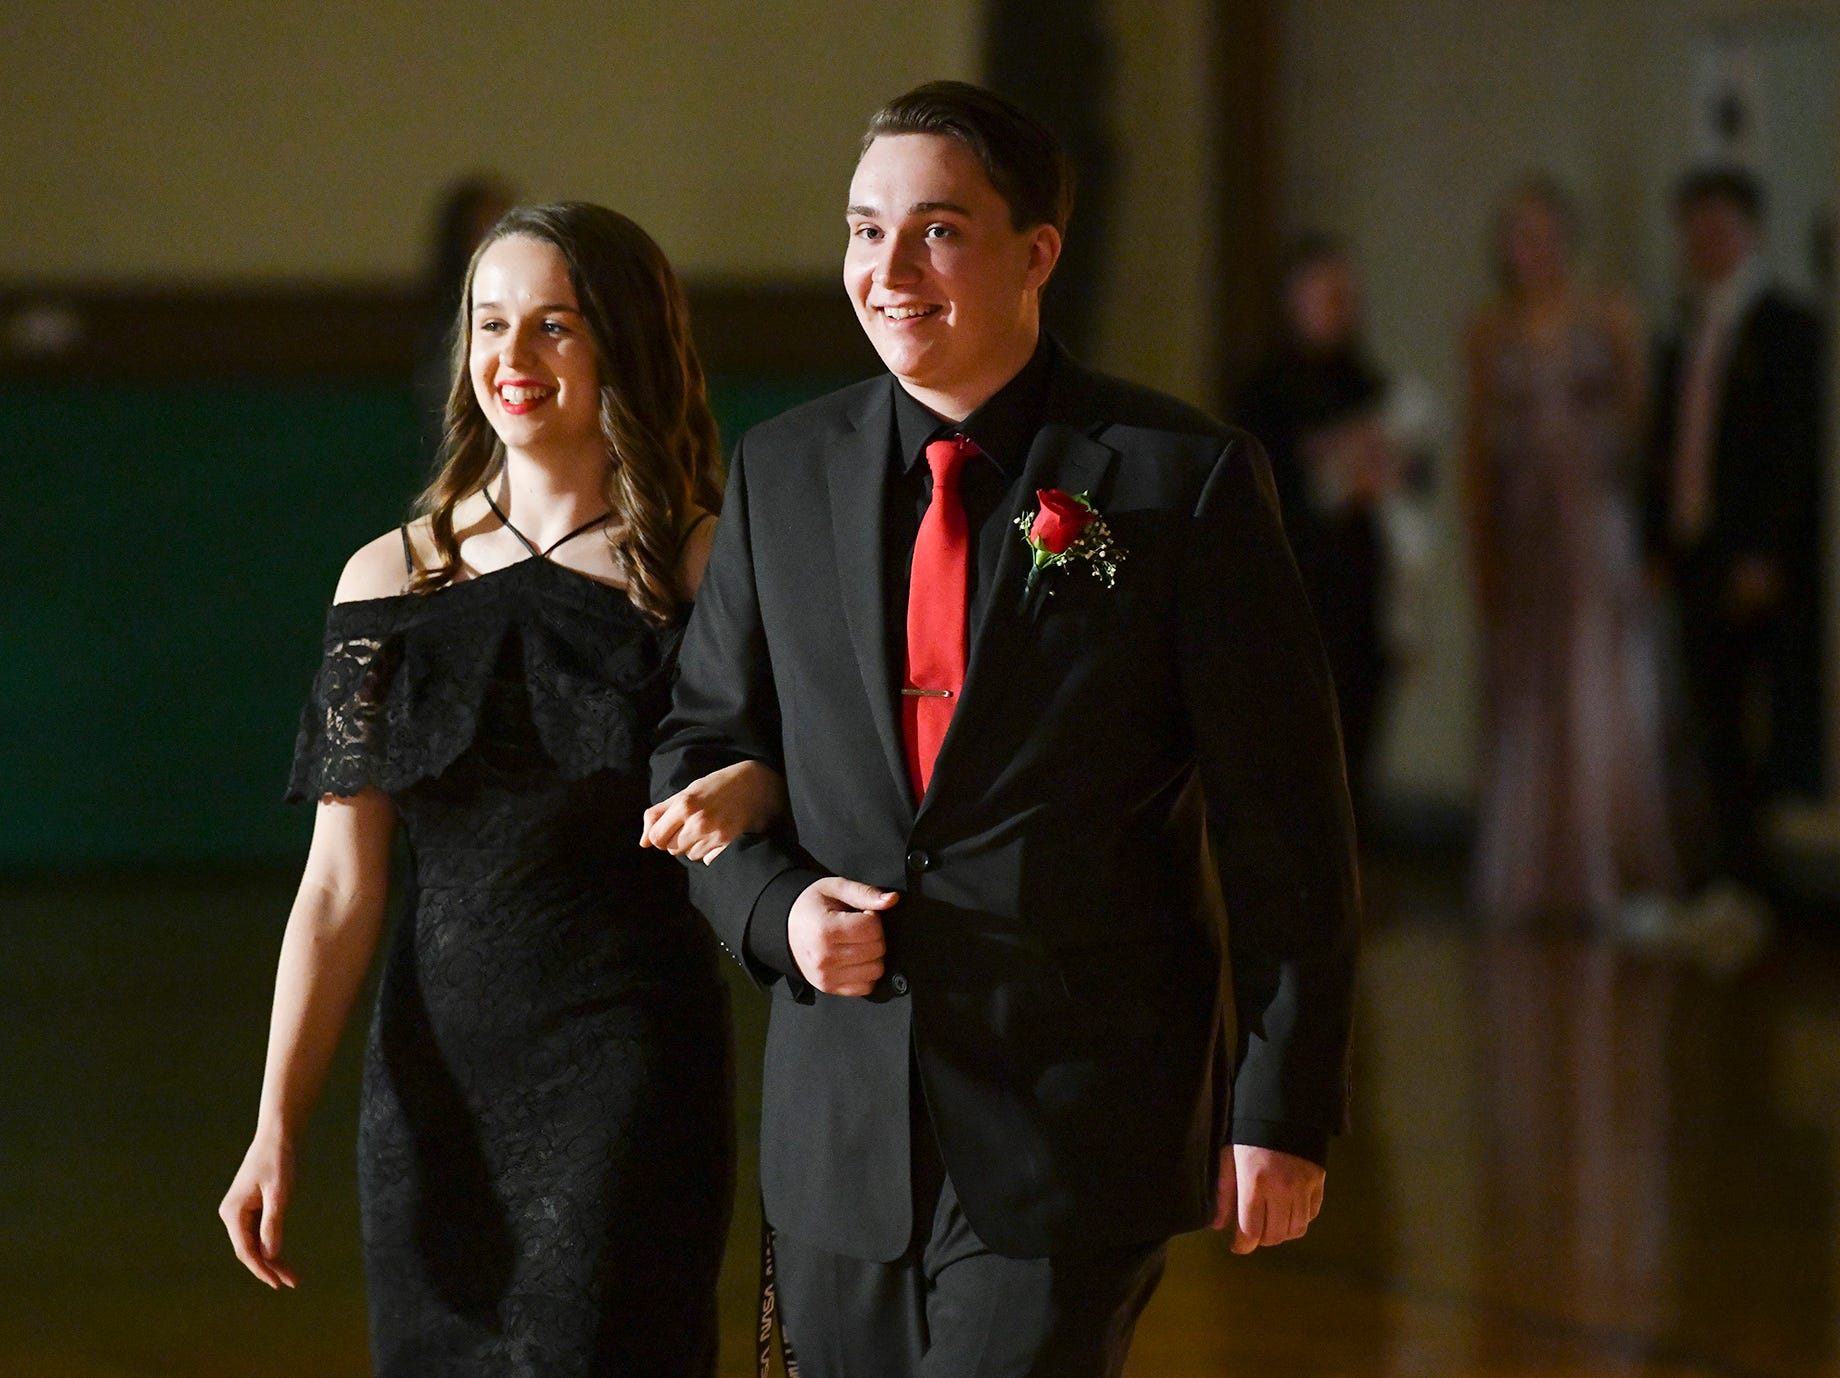 Couples are outlined by the spotlight during prom grand march Saturday, April 27, at Tech High School in St. Cloud.